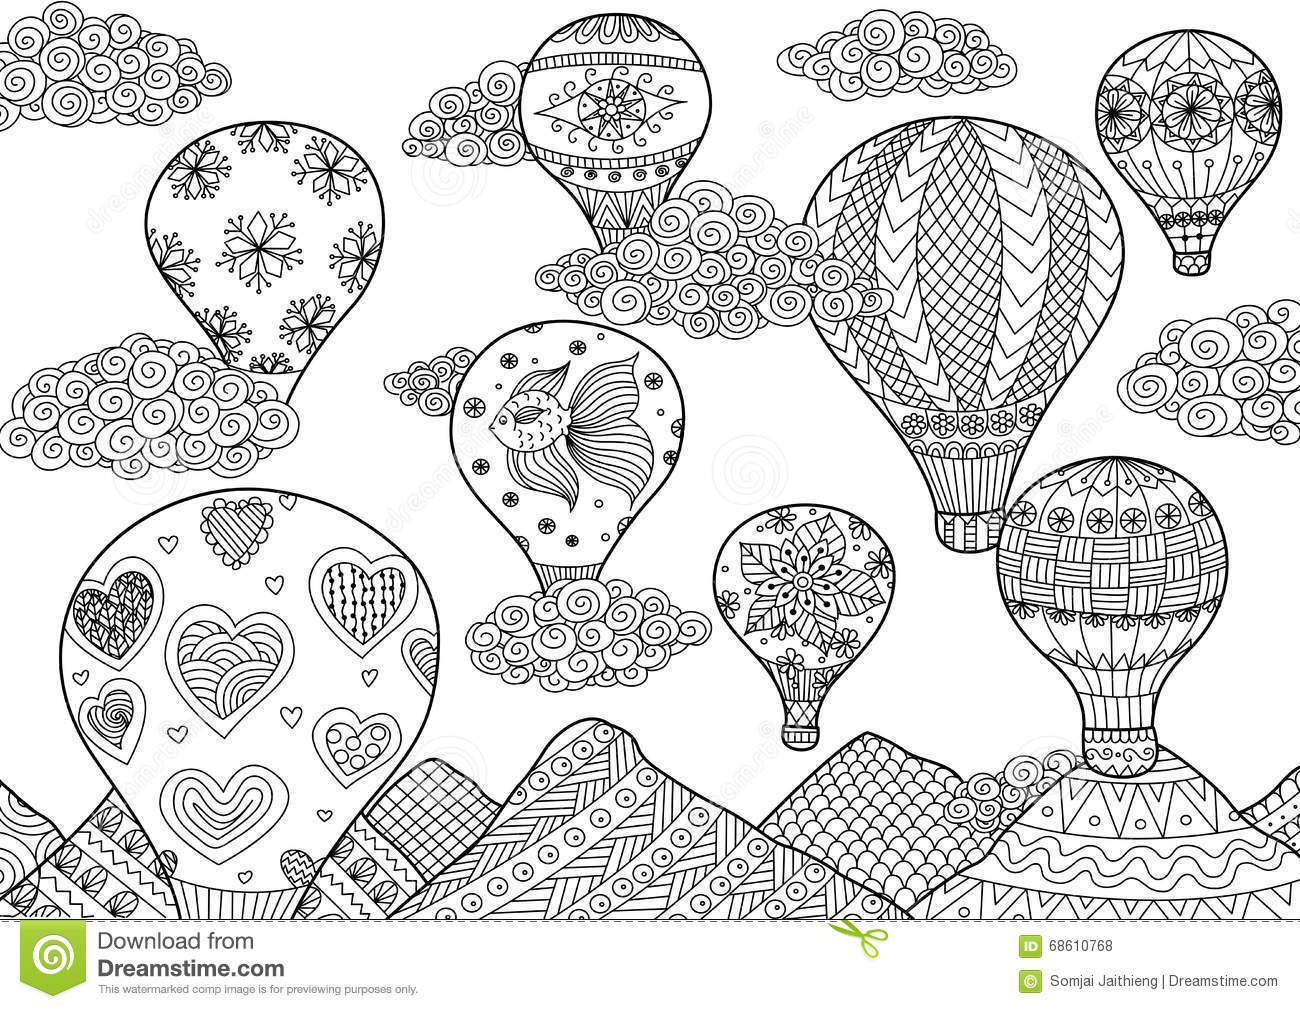 Pin de Dreamstime Stock Photos en Coloring pages, start creating ...